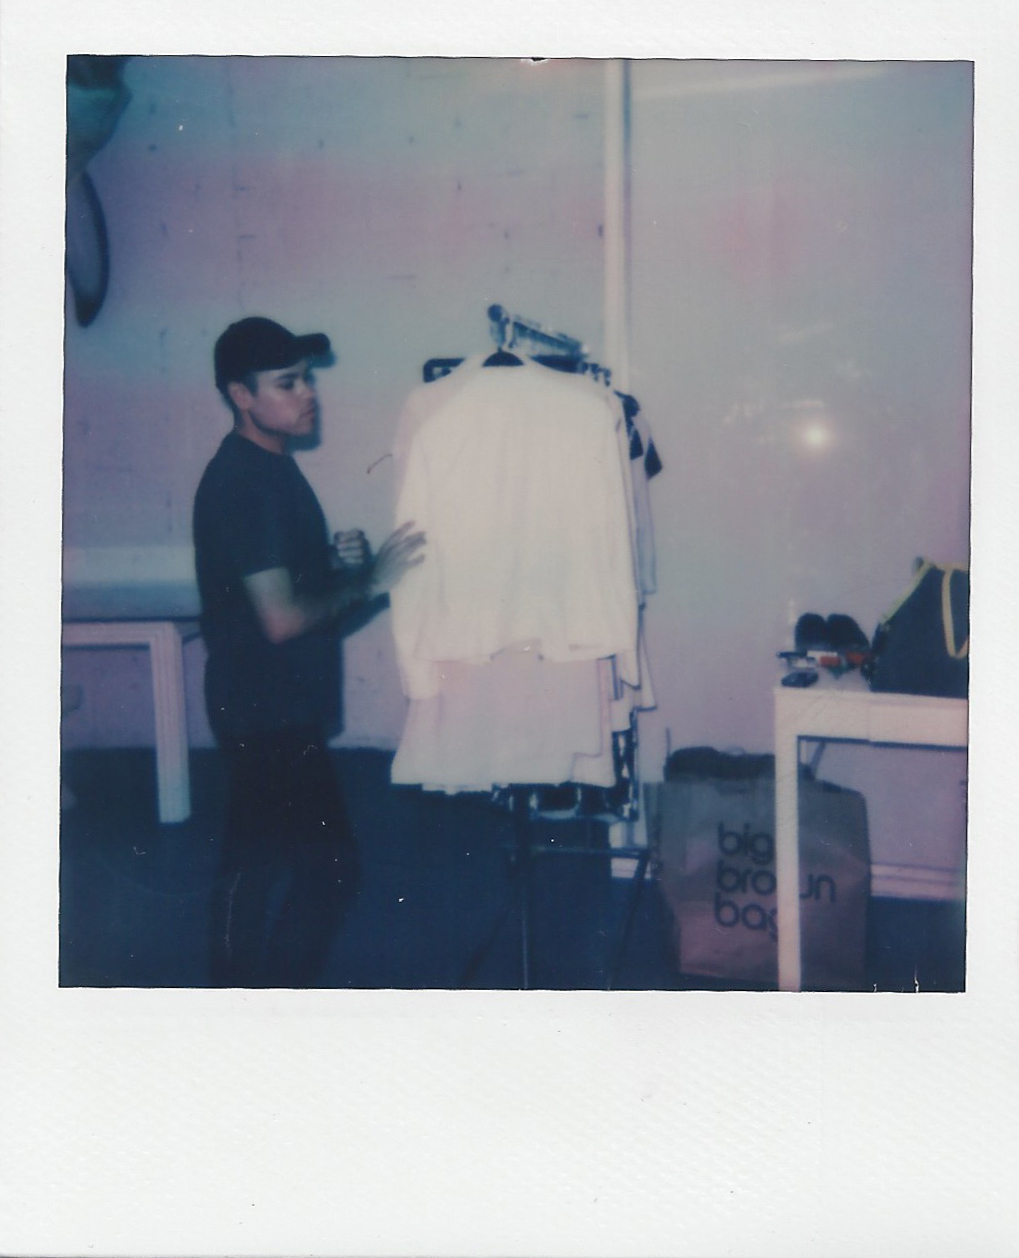 NYC_Fashion_Photographer_Polaroid_Behind_The_Scenes_Photoshoot_Impossible_Film_Camera_Models_Stylist_Michael_Rosenberg_Little_river_Studios_Miami